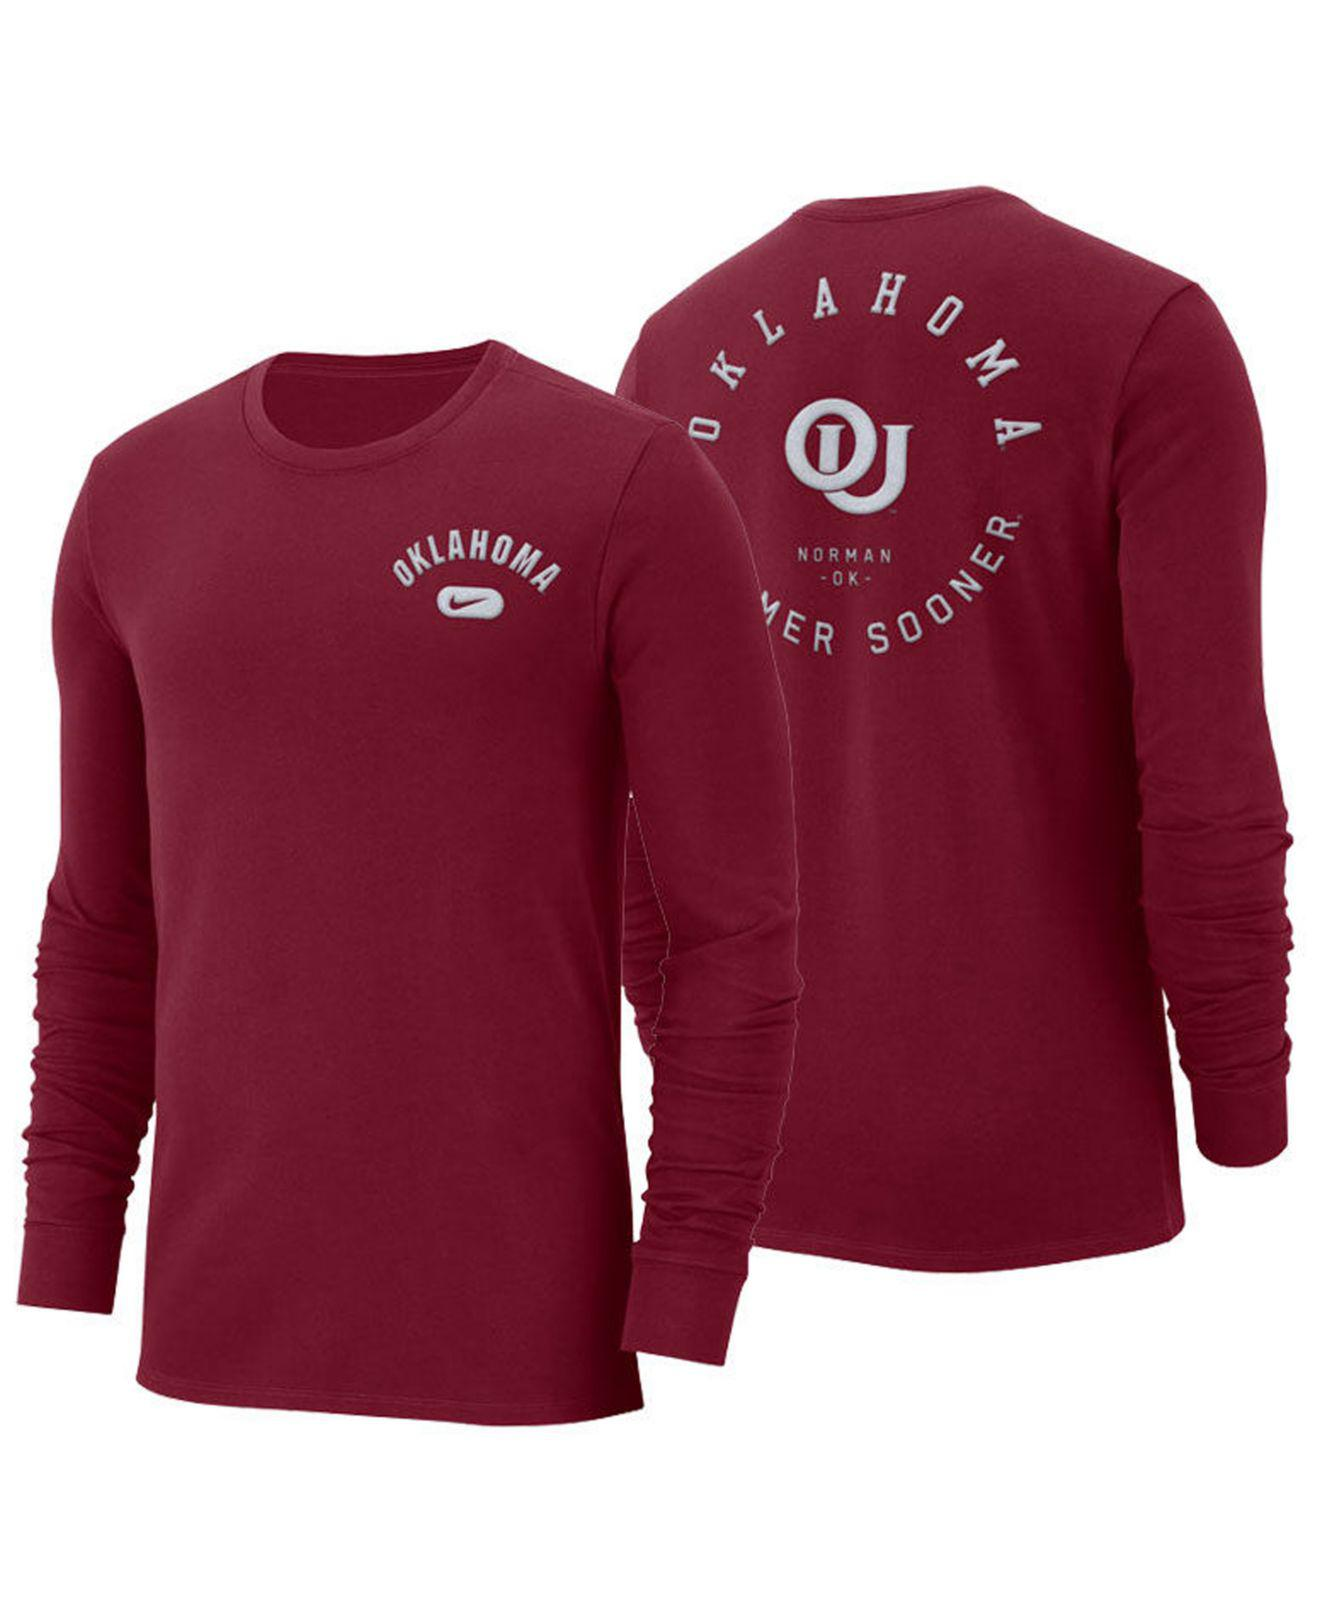 bd2b0d0d6e00 Lyst - Nike Oklahoma Sooners Retro Cotton Long Sleeve T-shirt in Red ...